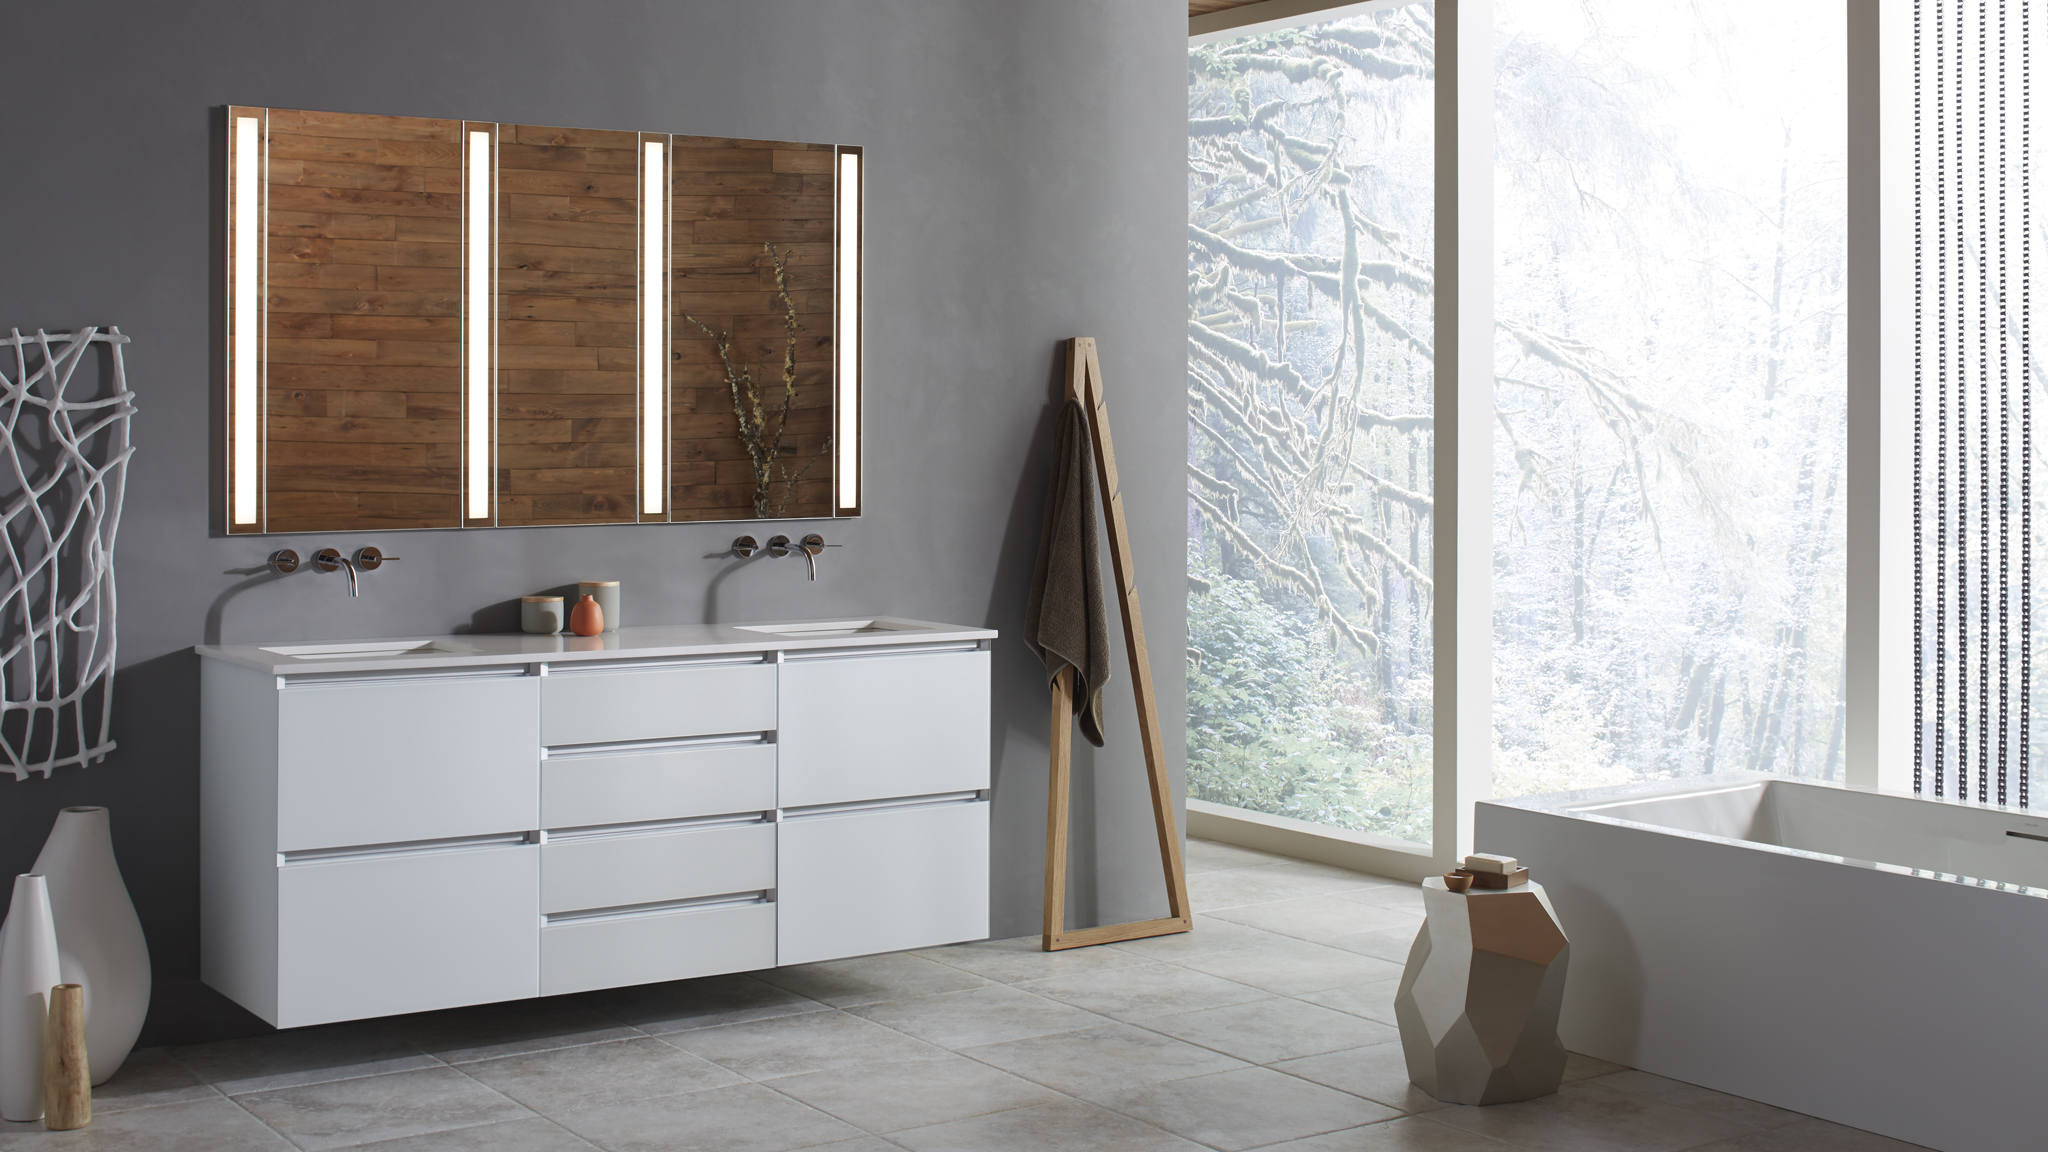 mirror design bathroom costco modern recessed plus full american light also afina inset fixtures triangle for robern standard lights beveled ideas outlet of mirrored brown estate size vanity medicine graff vanities with and cabinets all cabinet kohler faucets